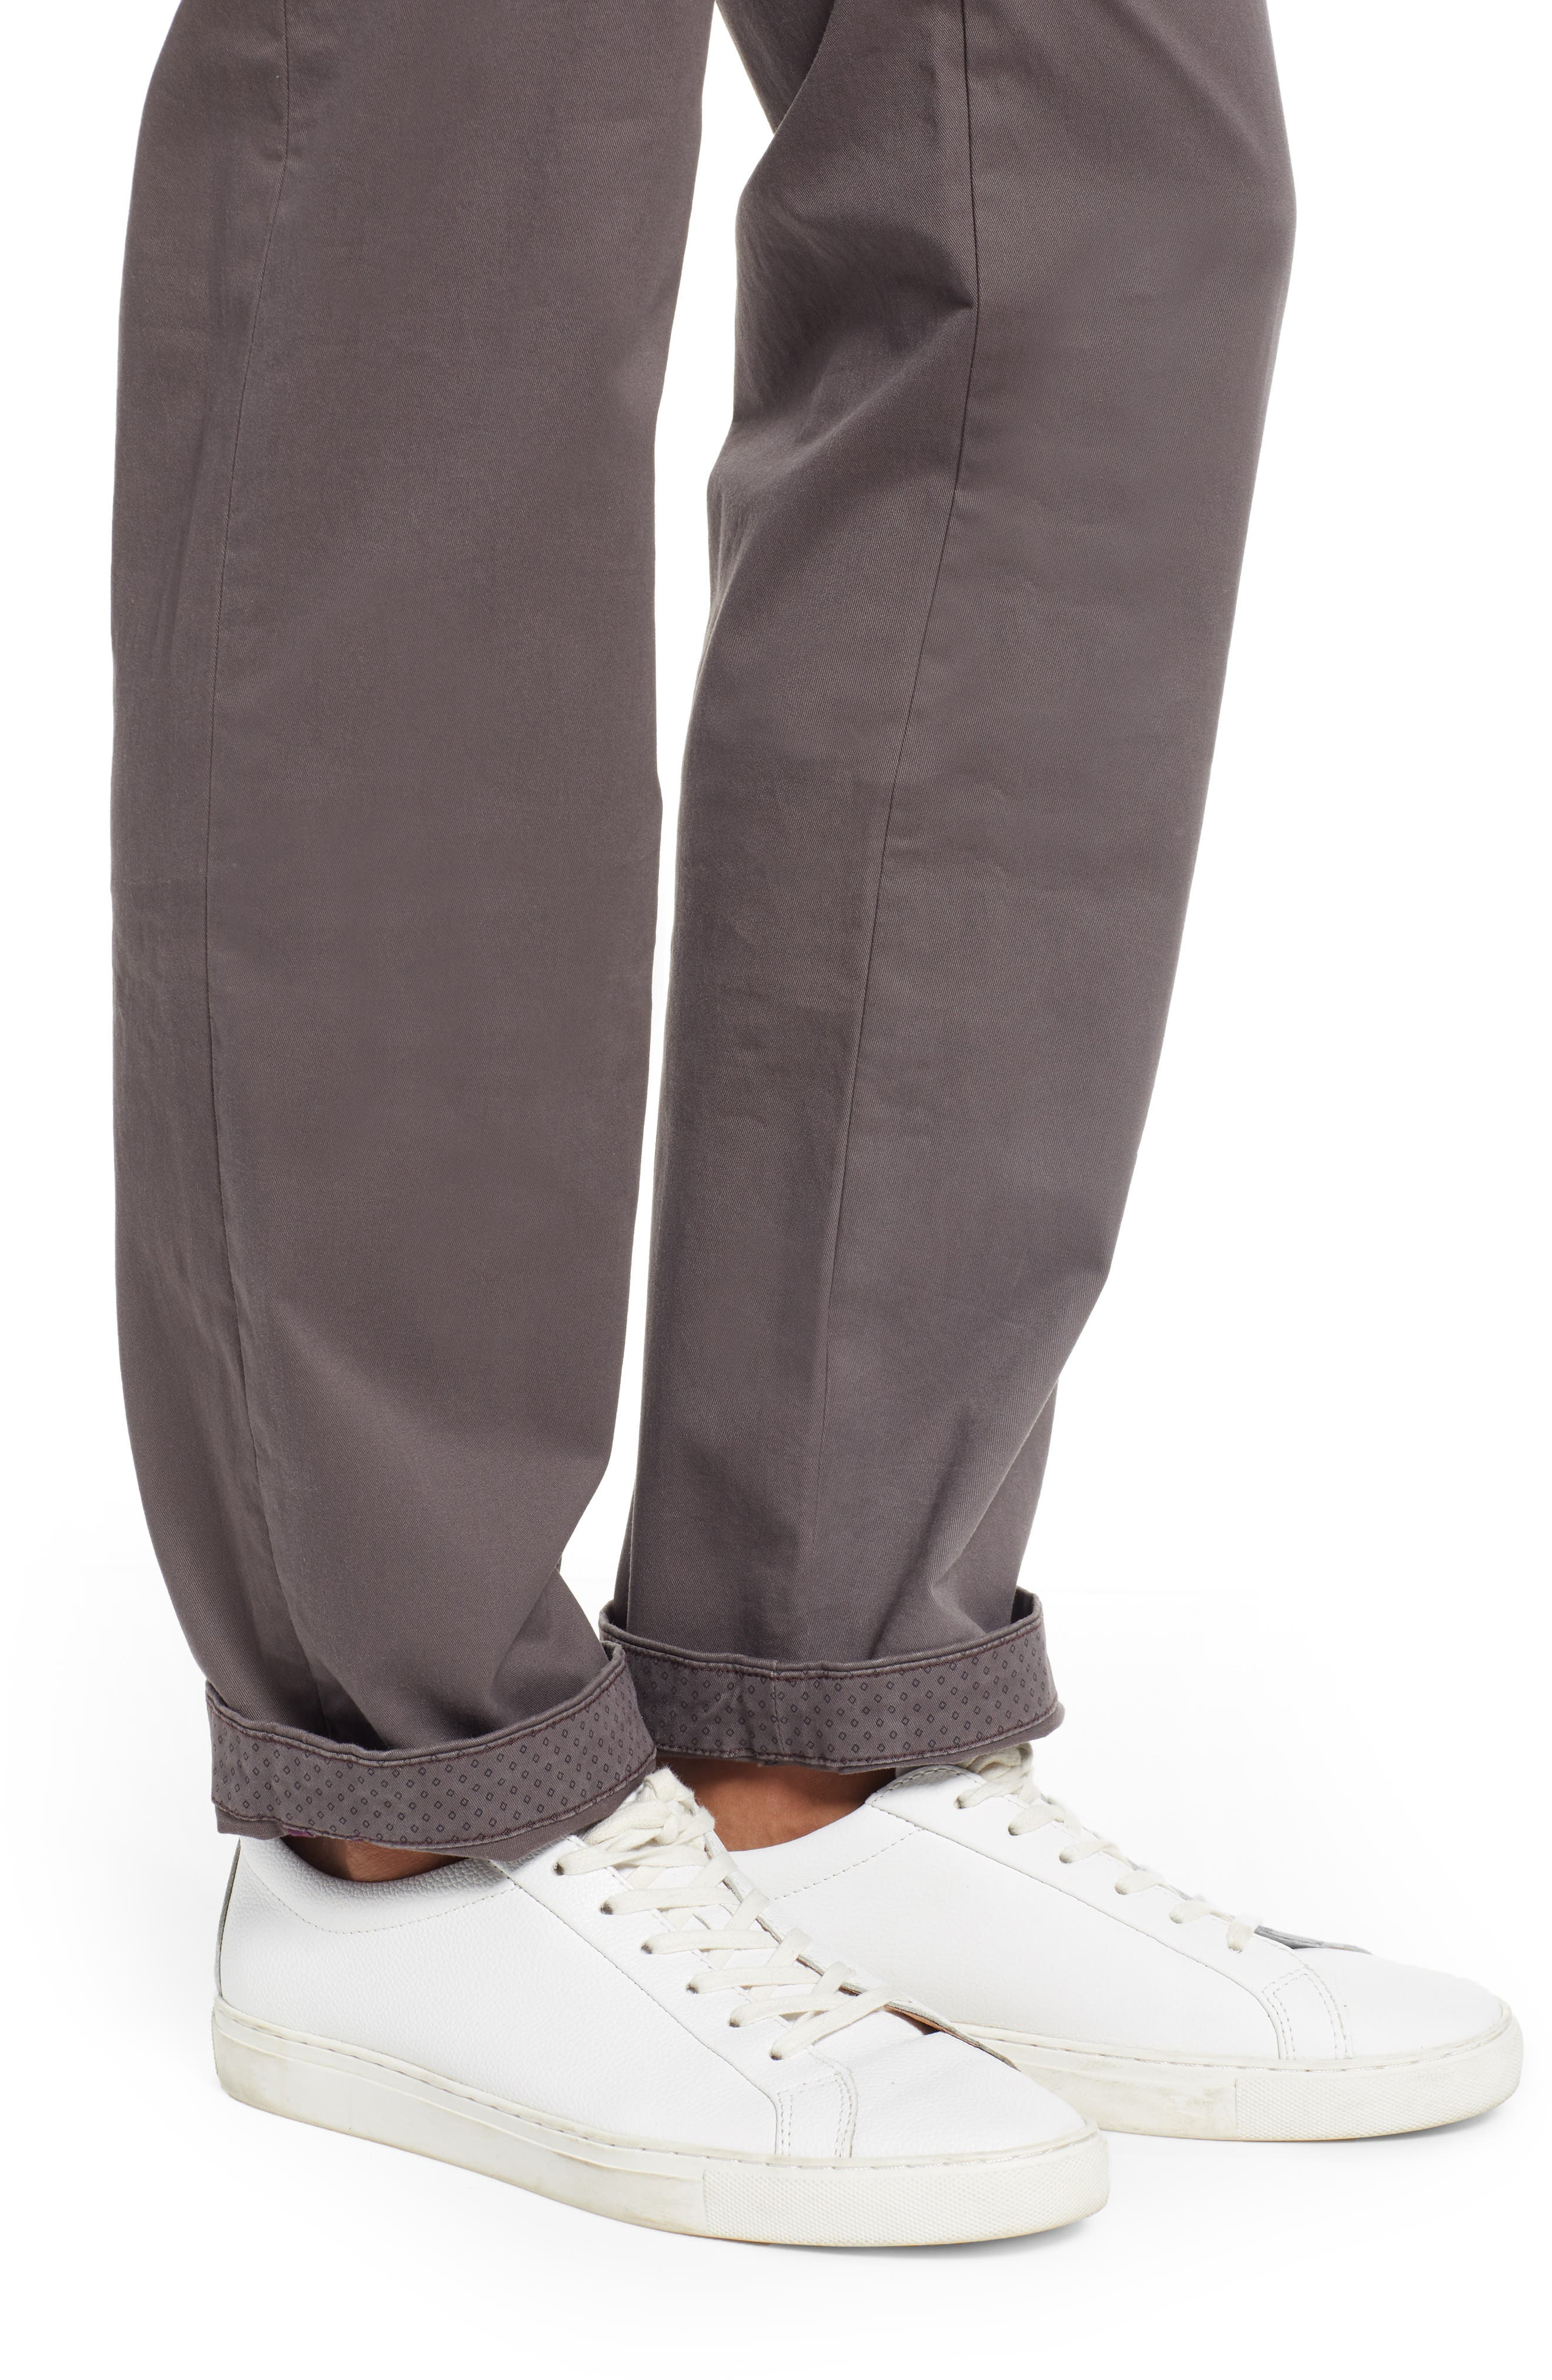 TED BAKER LONDON, Selebtt Slim Fit Stretch Cotton Chinos, Alternate thumbnail 4, color, 020